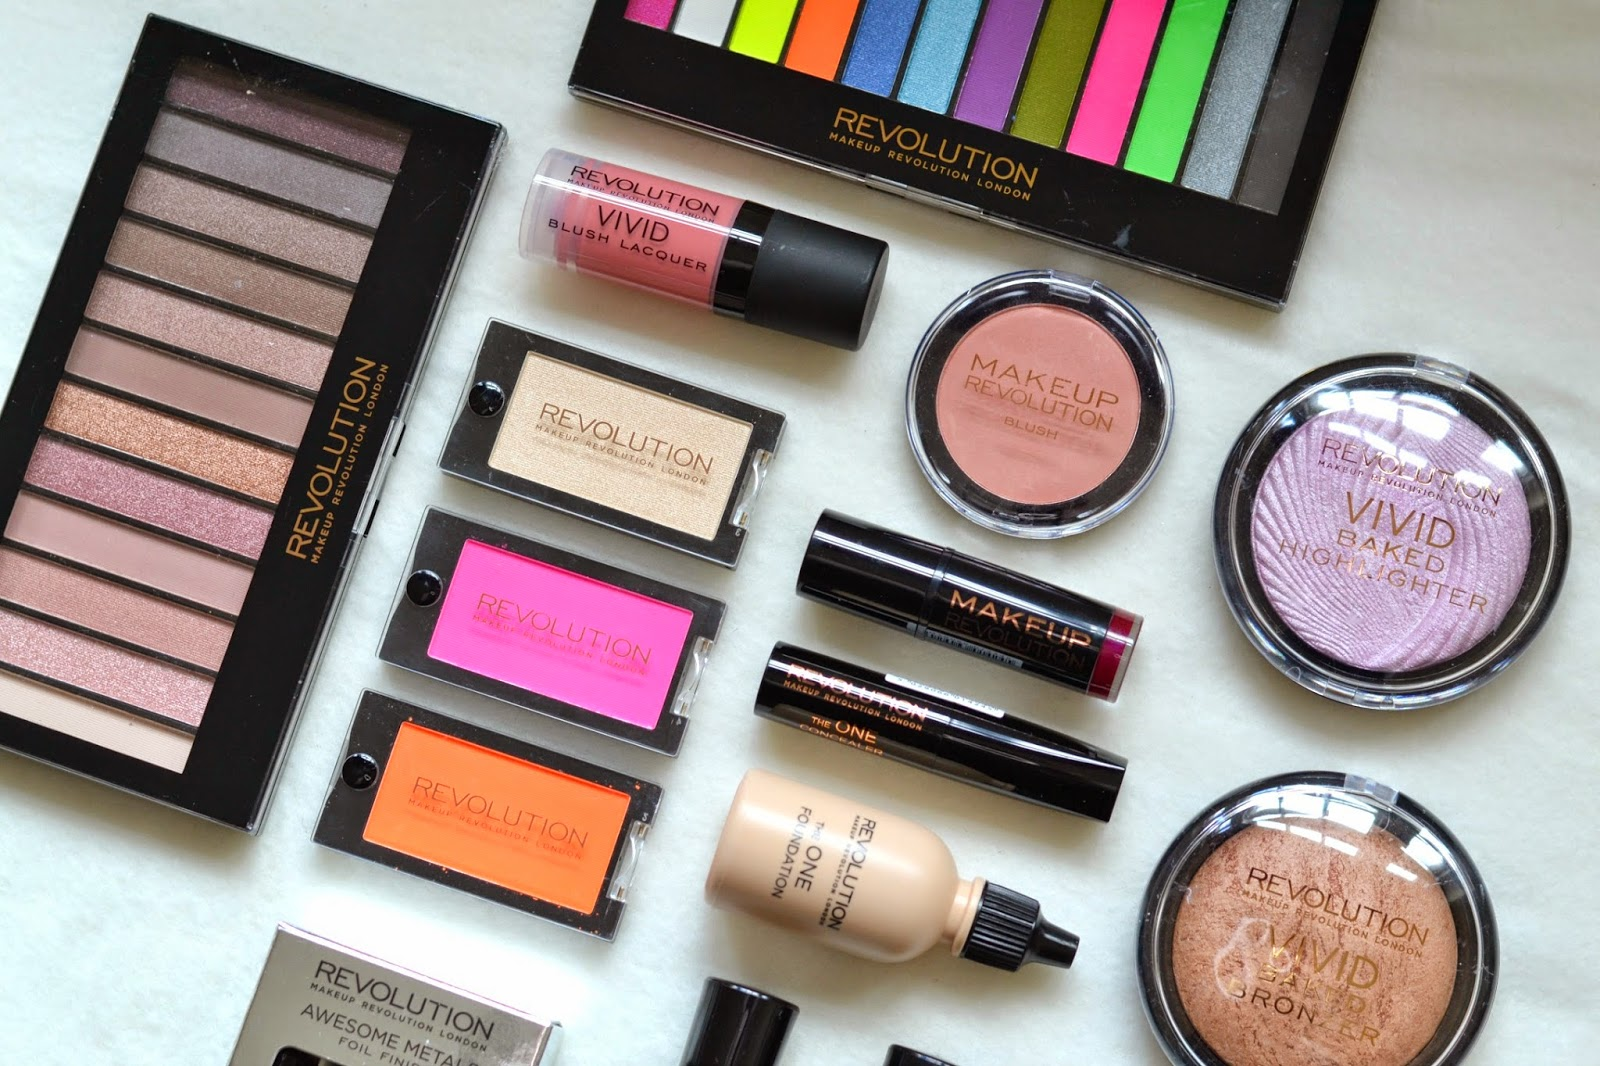 new brand alert makeup revolution and the 3 items you